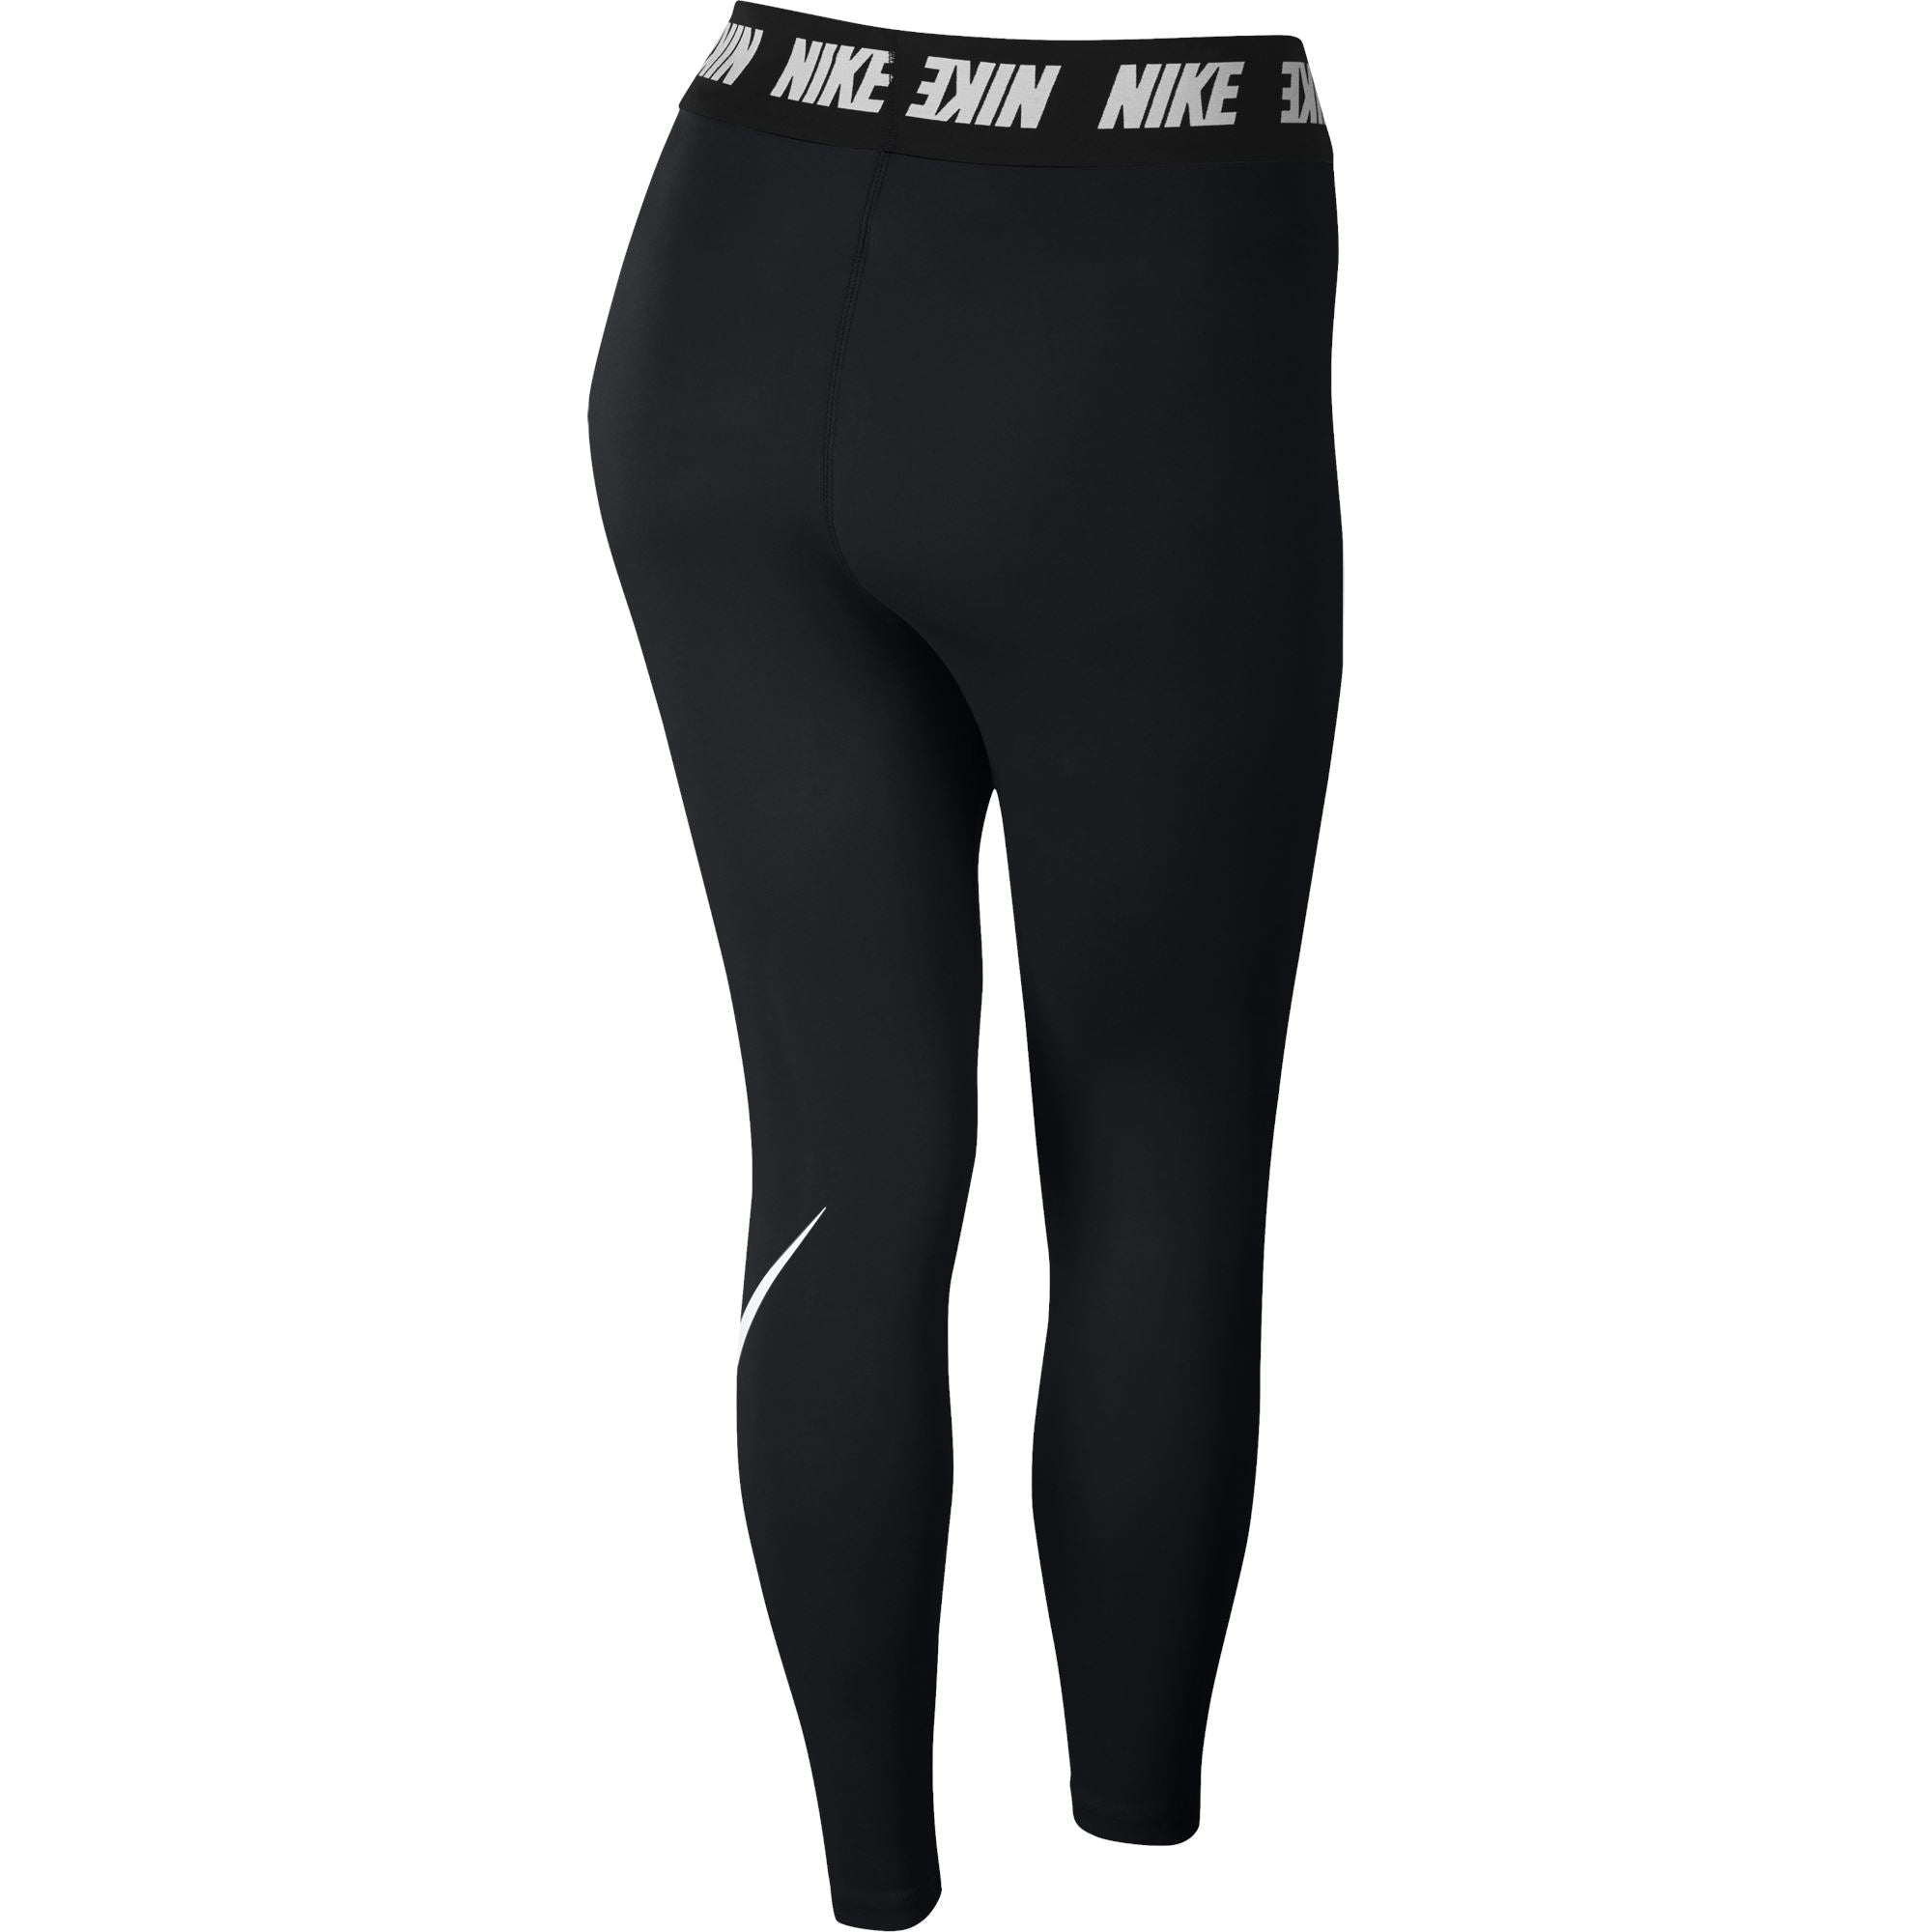 295bb9de24 Nike Womens Sportswear Club High-Rise Legging - Black/White